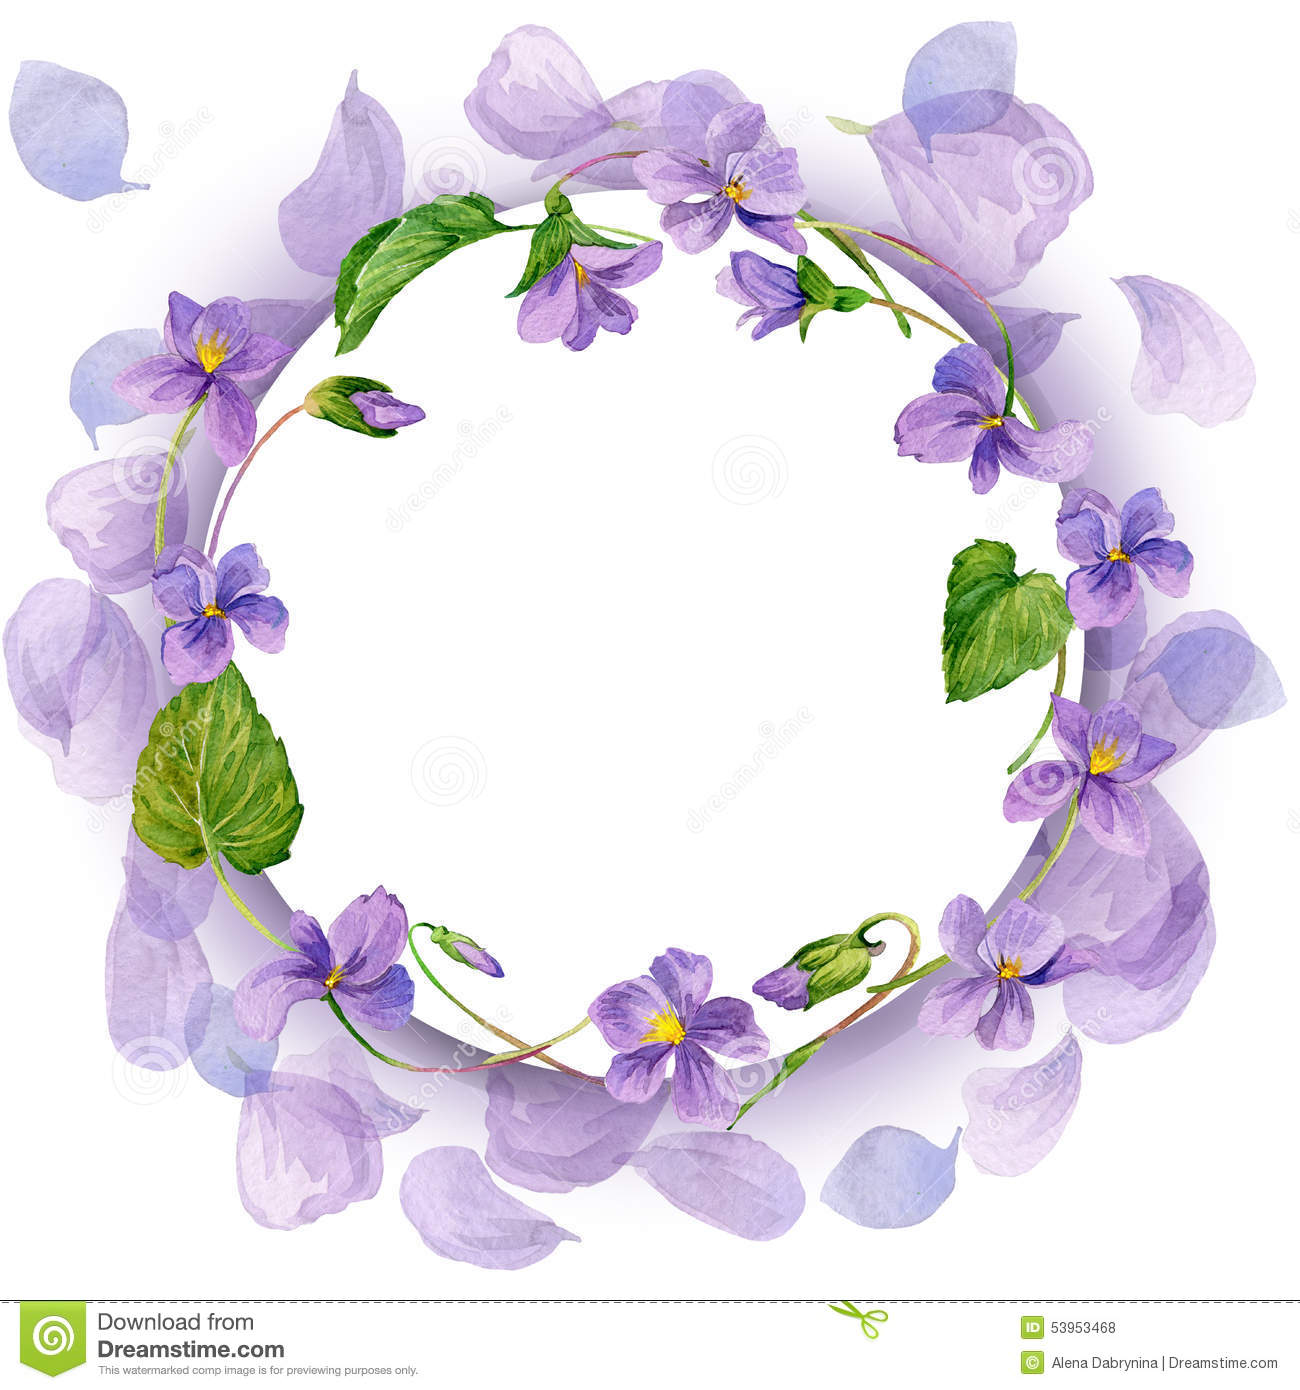 Wreath And Garden Flower Background. Watercolor Stock Illustration.